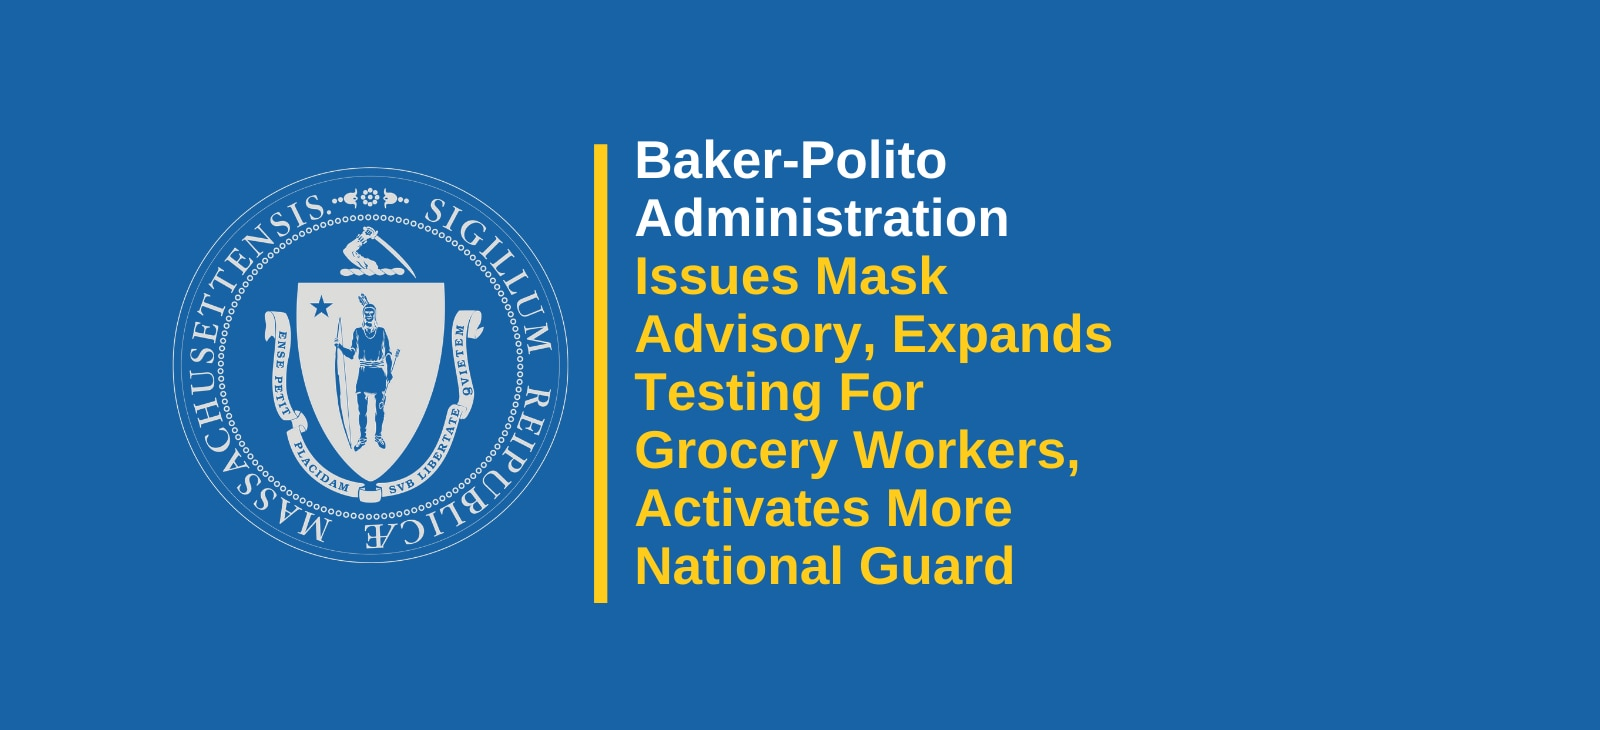 Baker-Polito Administration Issues Further Public Health Guidance to Mitigate Spread of COVID-19, Expands First Responder Testing Sites to Include Grocery Store Workers and Authorizes Increased National Guard Activation